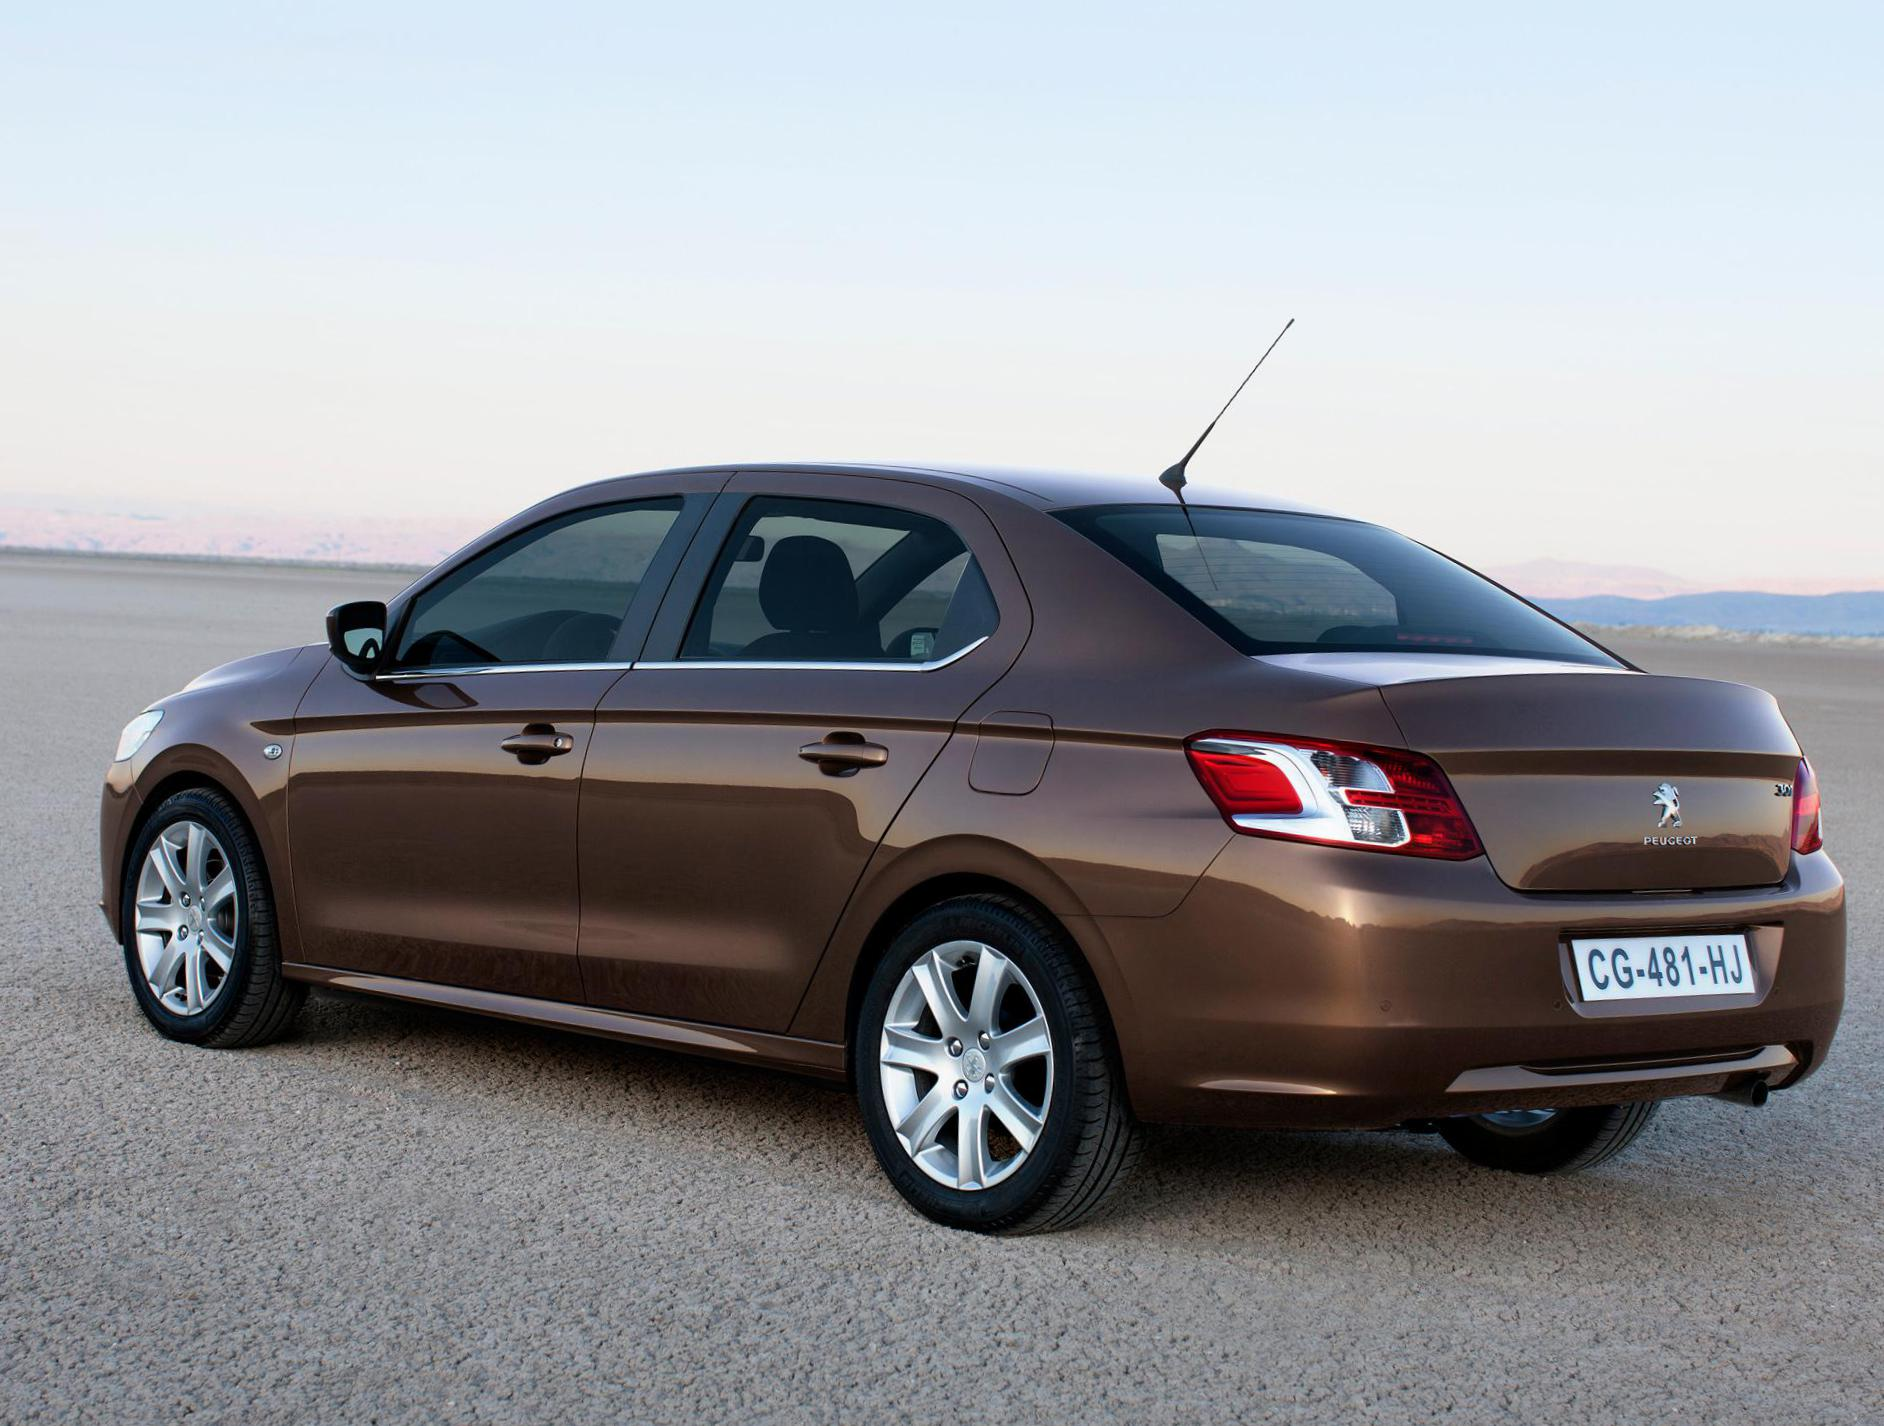 Peugeot 301 Photos and Specs. Photo: Peugeot 301 review ...